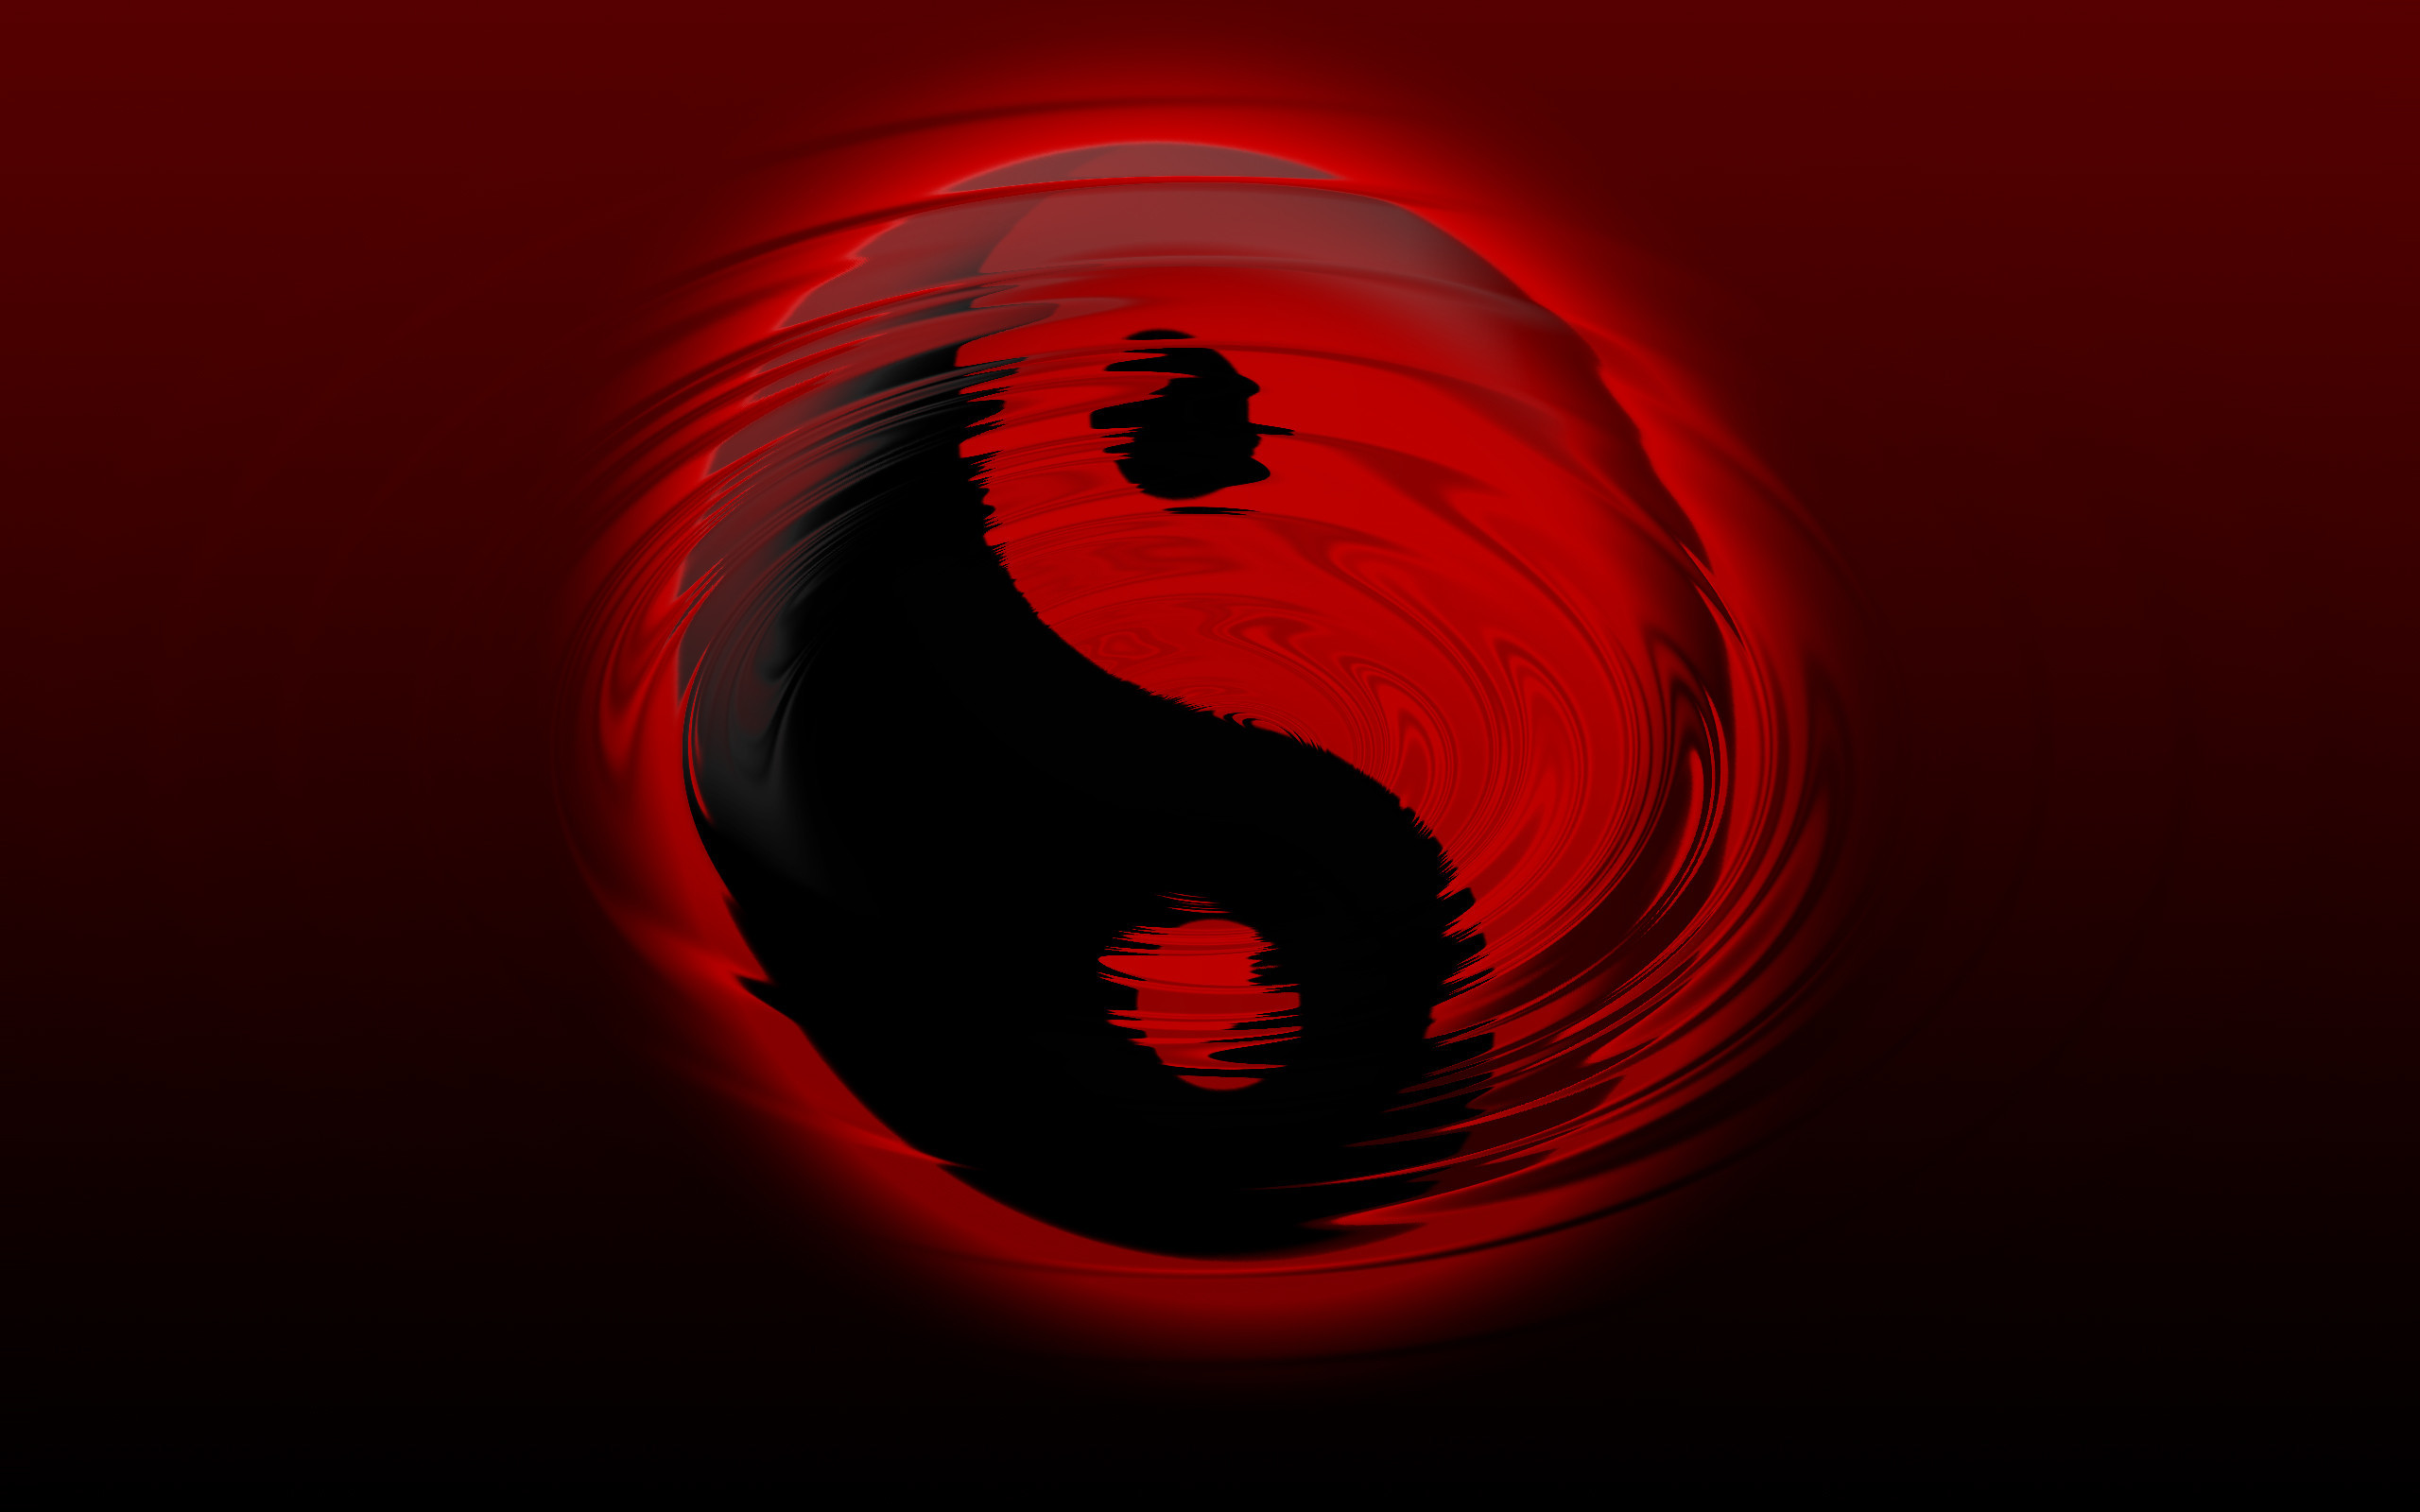 Cool Black And Red Desktop Backgrounds